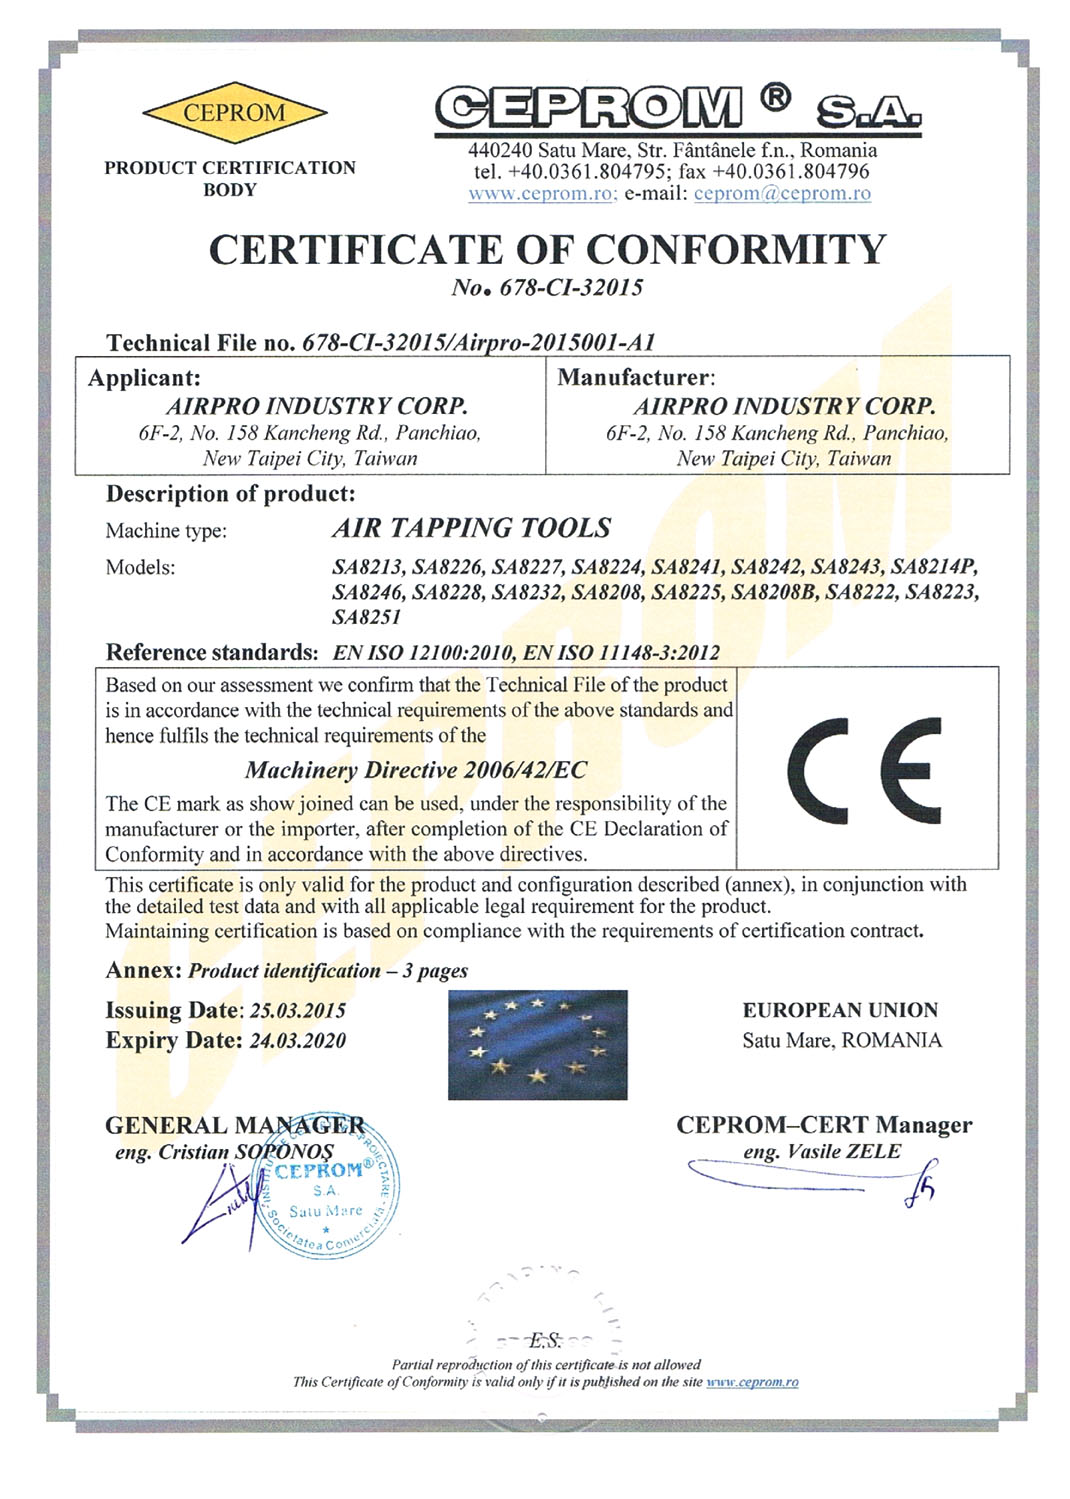 CERTIFICATE OF CONFORMITY-AIR TAPPING TOOLS